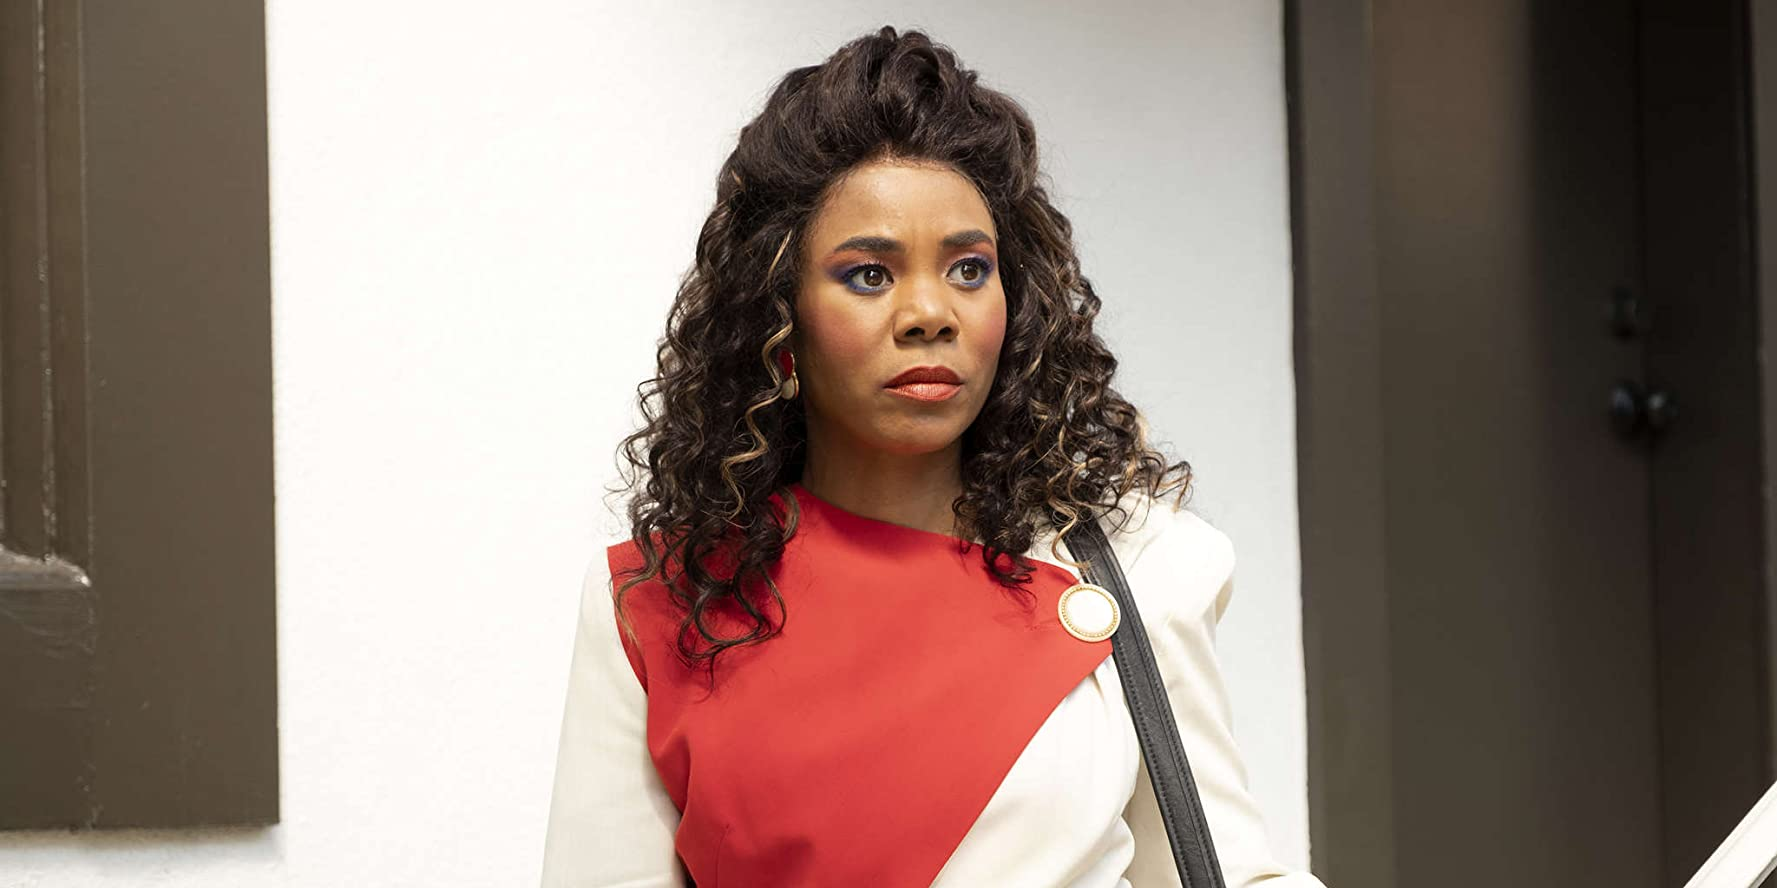 regina hall moviesregina hall insta, regina hall фильмы, regina hall movies, regina hall 2019, regina hall age, regina hall scary movie, regina hall the best man, regina hall mother, regina hall wikipedia, regina hall height, regina hall imdb, regina hall filme, regina hall films, regina hall twitter, regina hall scary movie 2, regina hall about last night, regina hall scary movie interview, regina hall facebook